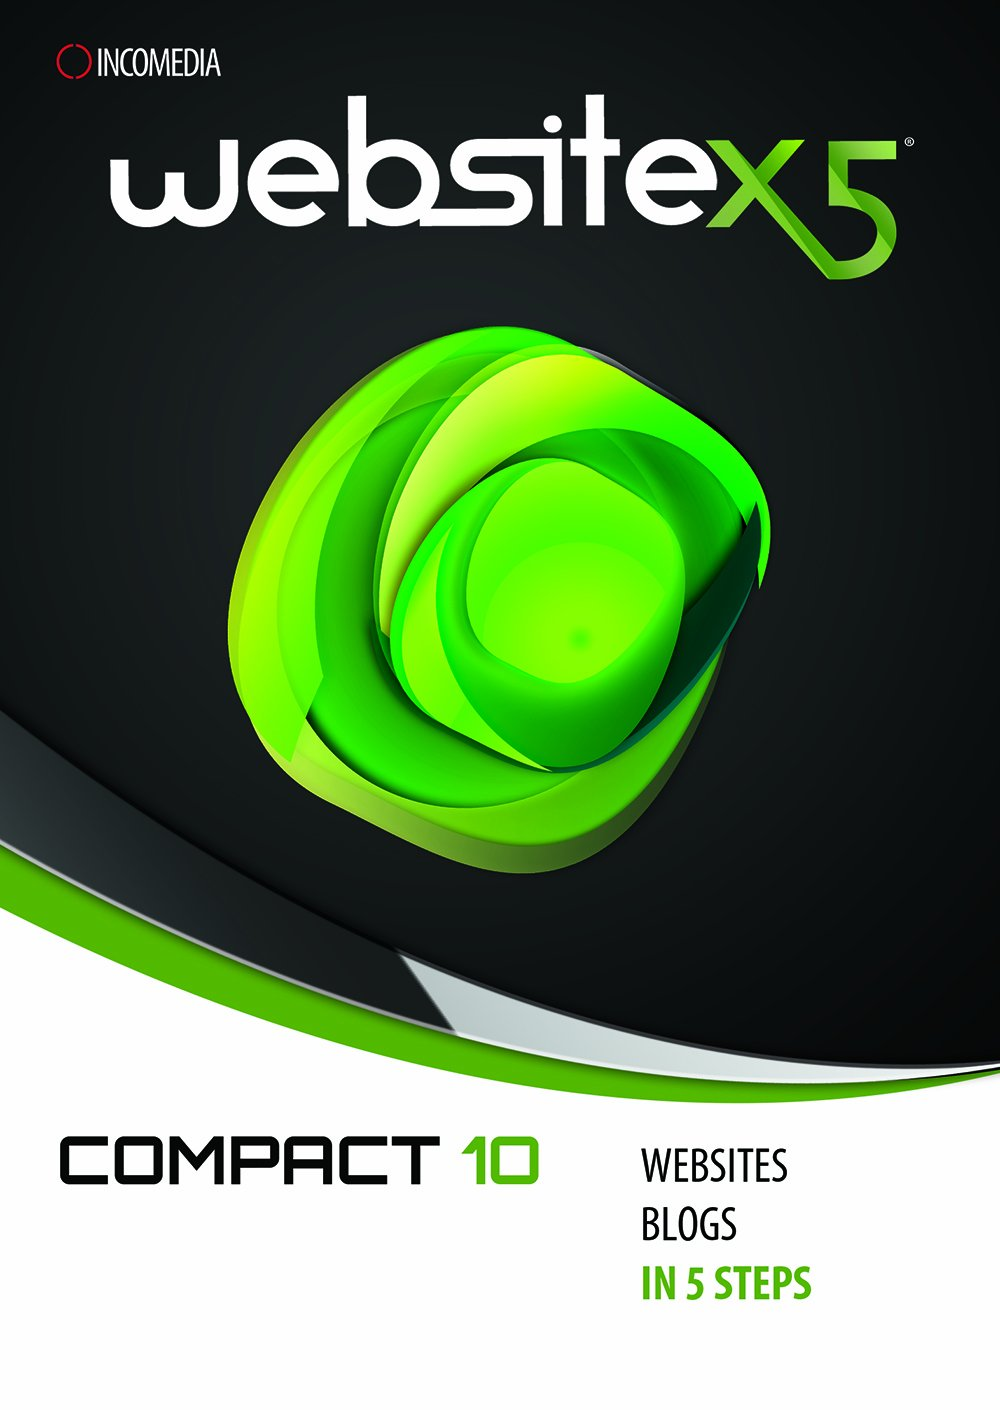 WebSite X5 Compact 10 [Download] by Incomedia